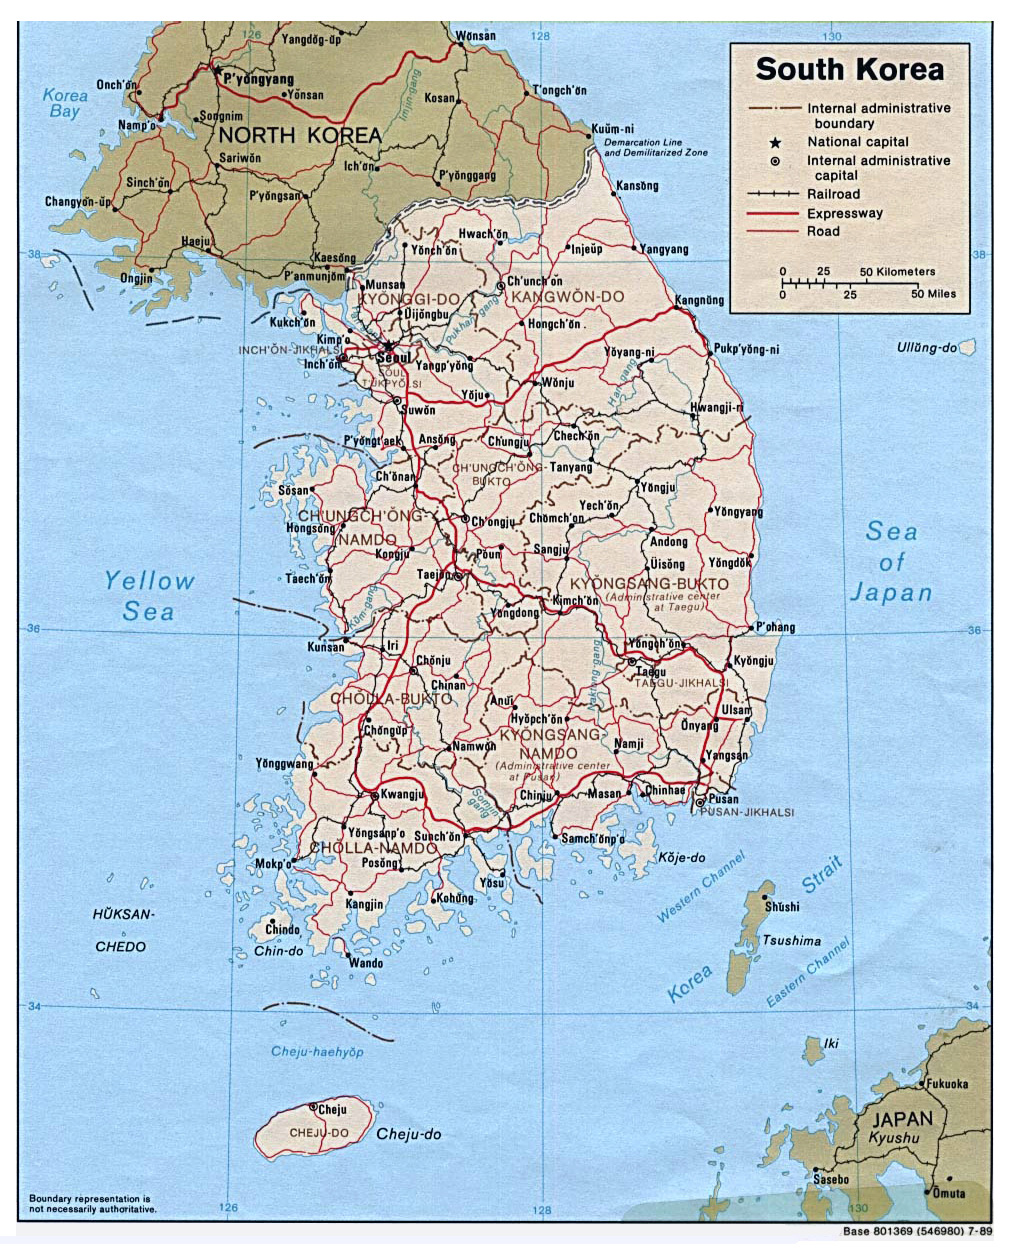 Detailed political map of South Korea South Korea detailed political map V